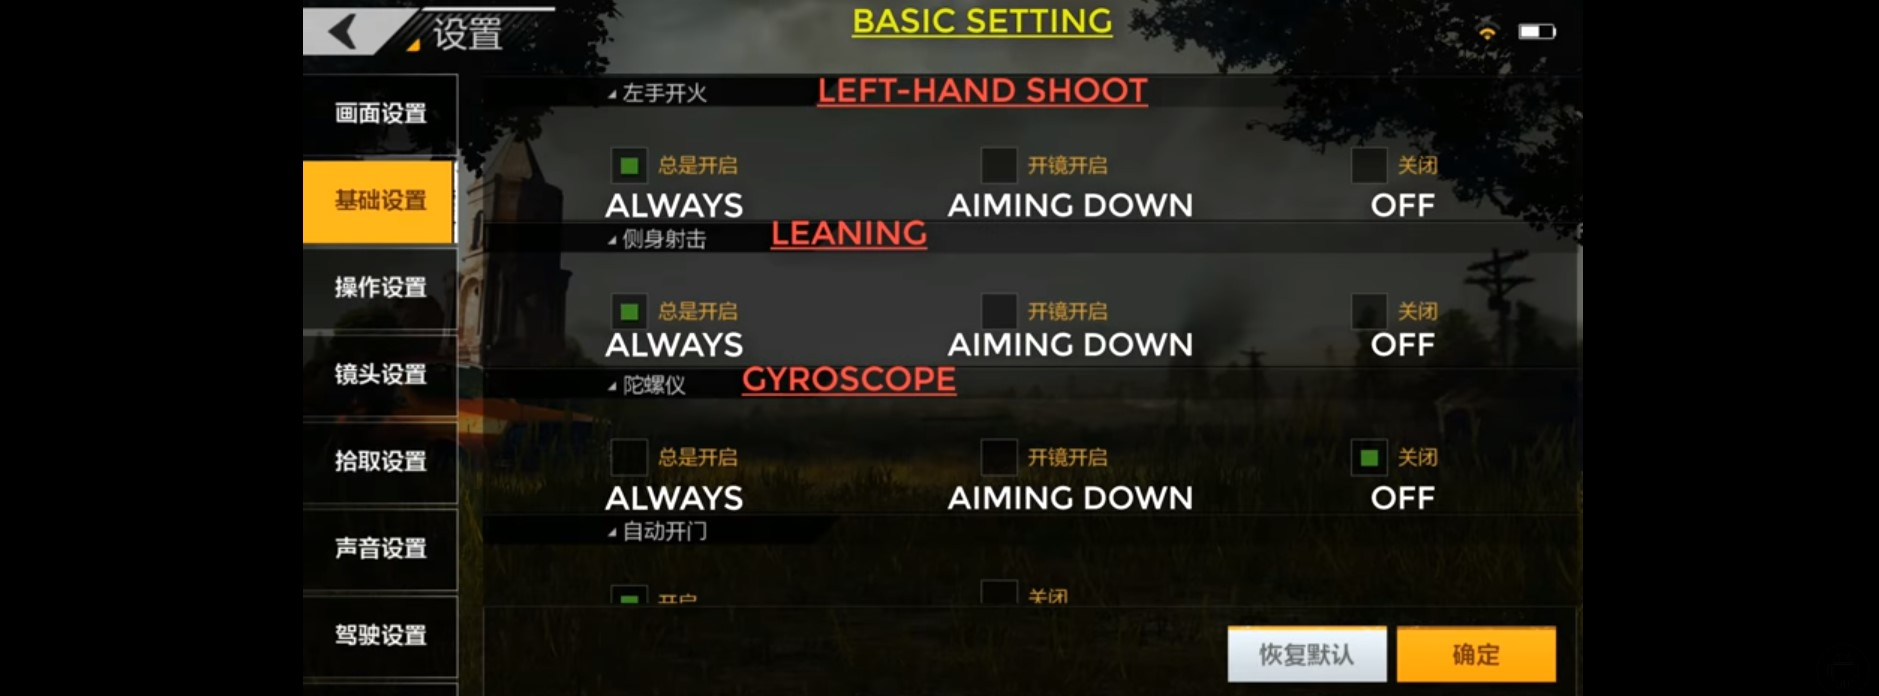 pubg mobile basic settings